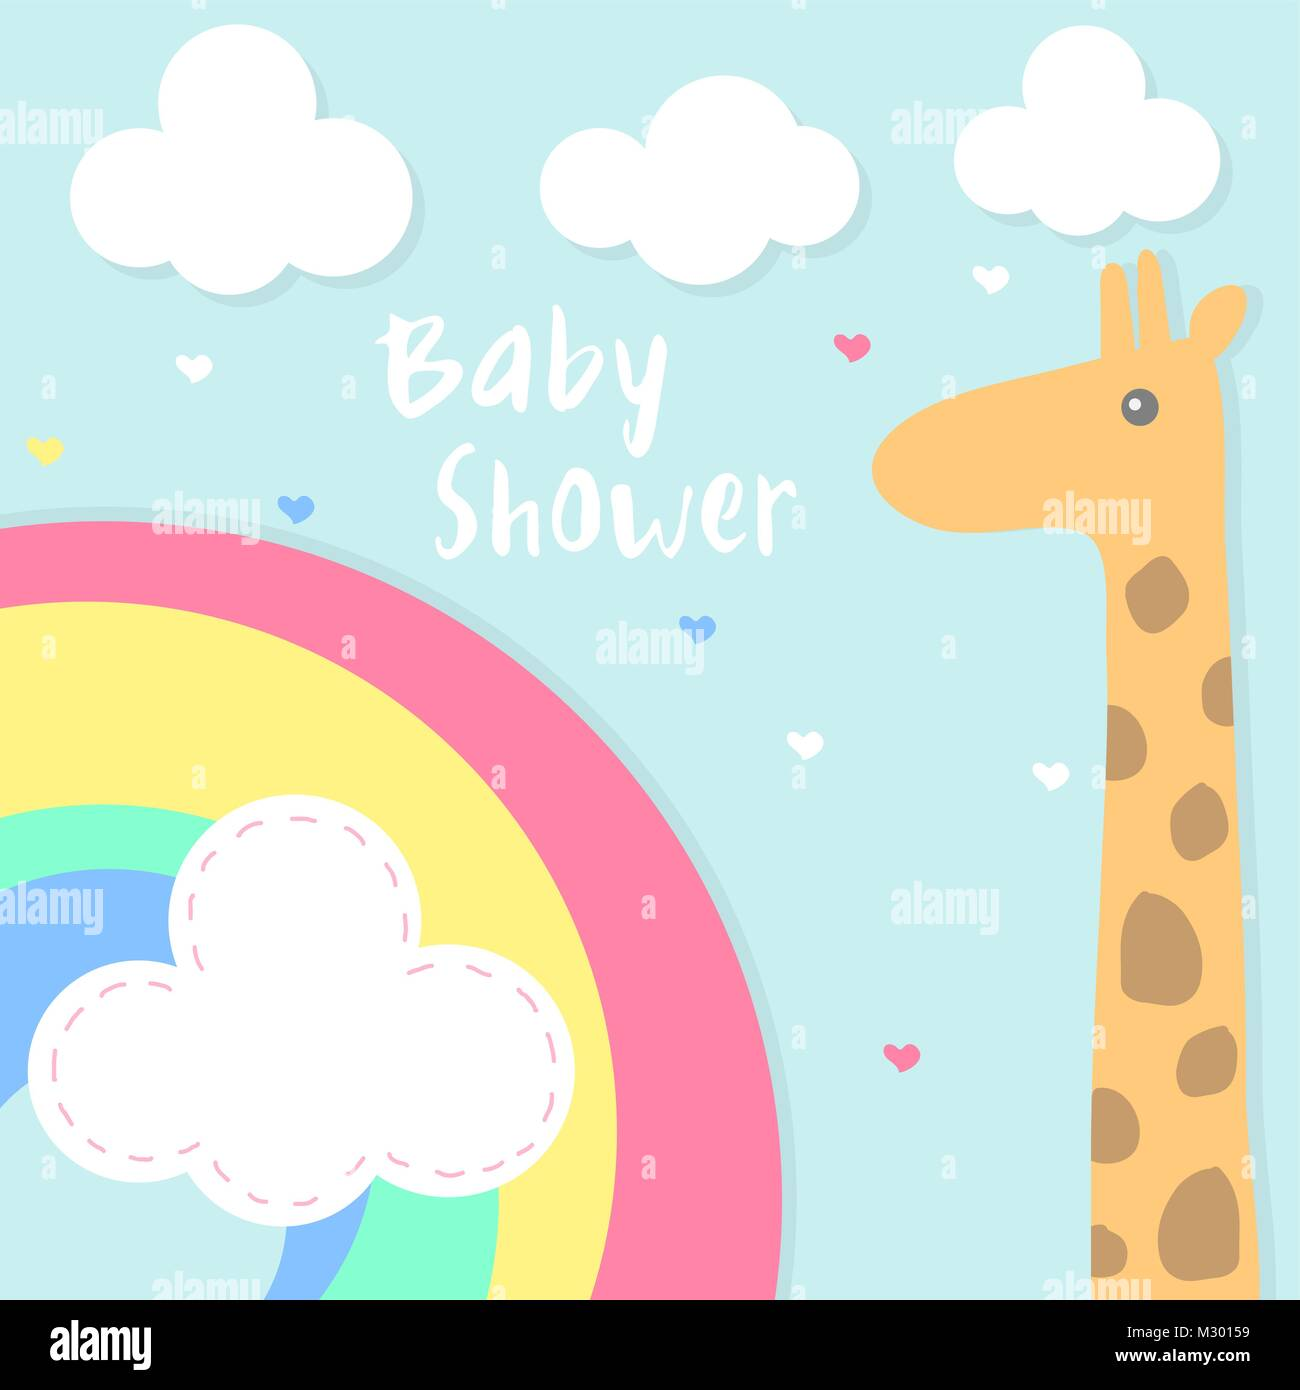 Vector baby shower invitation card with rainbow and giraffe stock vector baby shower invitation card with rainbow and giraffe stopboris Image collections